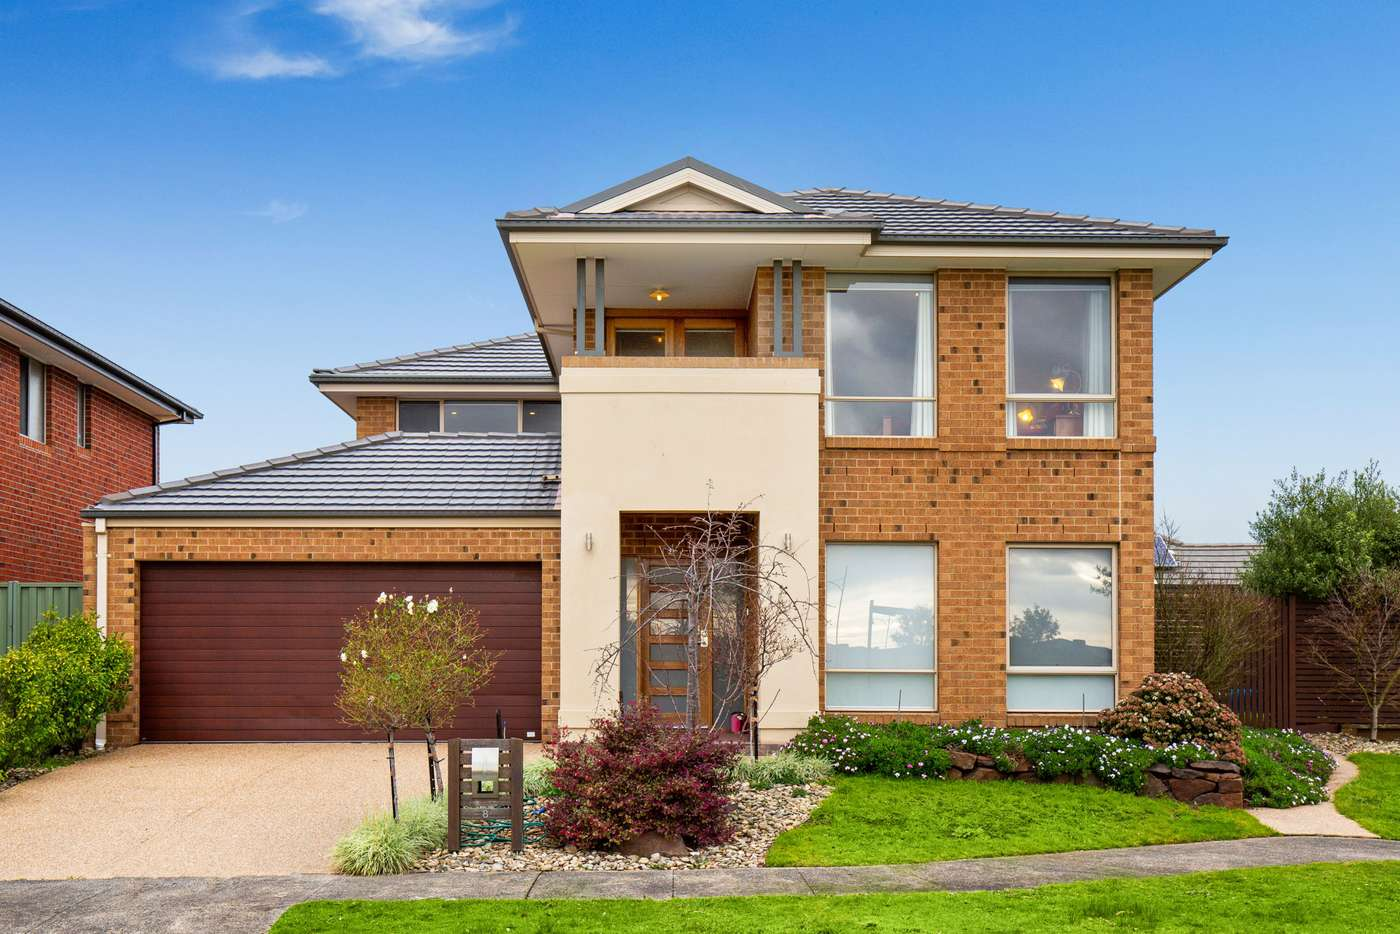 Main view of Homely house listing, 8 Avon River Way, Pakenham VIC 3810